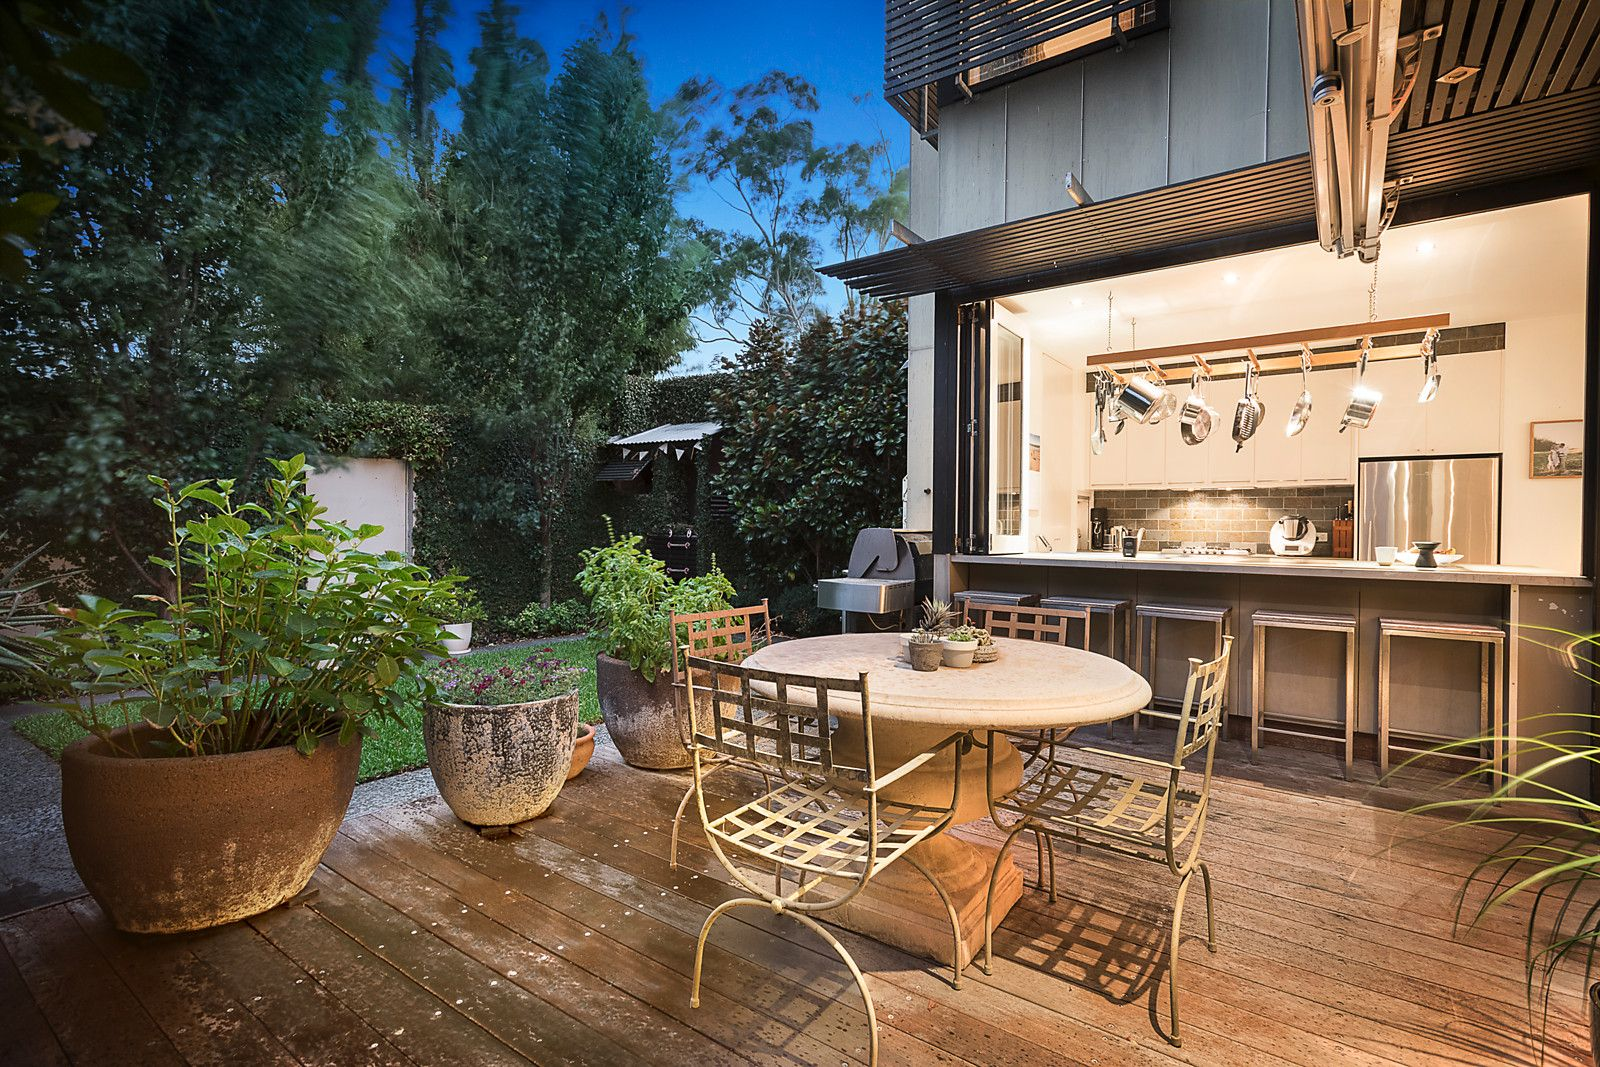 Property Report for 165 Nelson Road, South Melbourne VIC